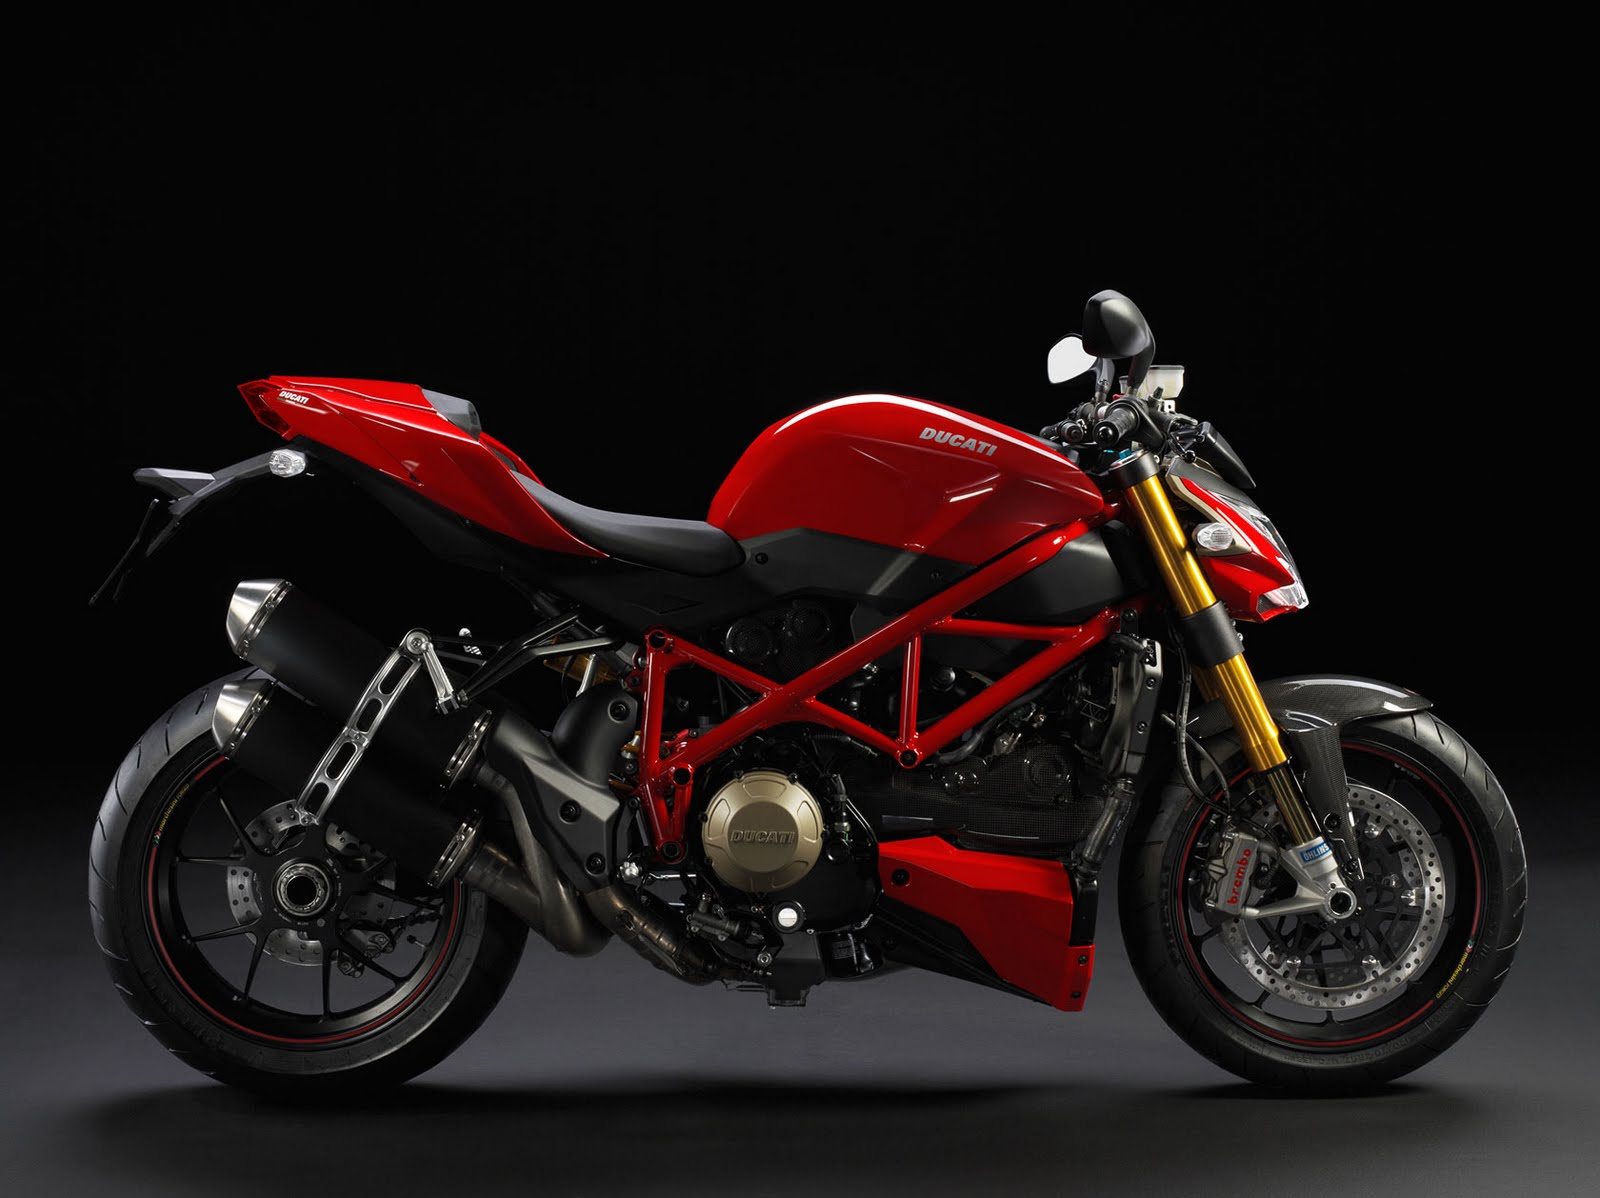 Top Motorcycle Wallpapers 2011 Ducati Streetfighter S Motorcycle 1600x1198